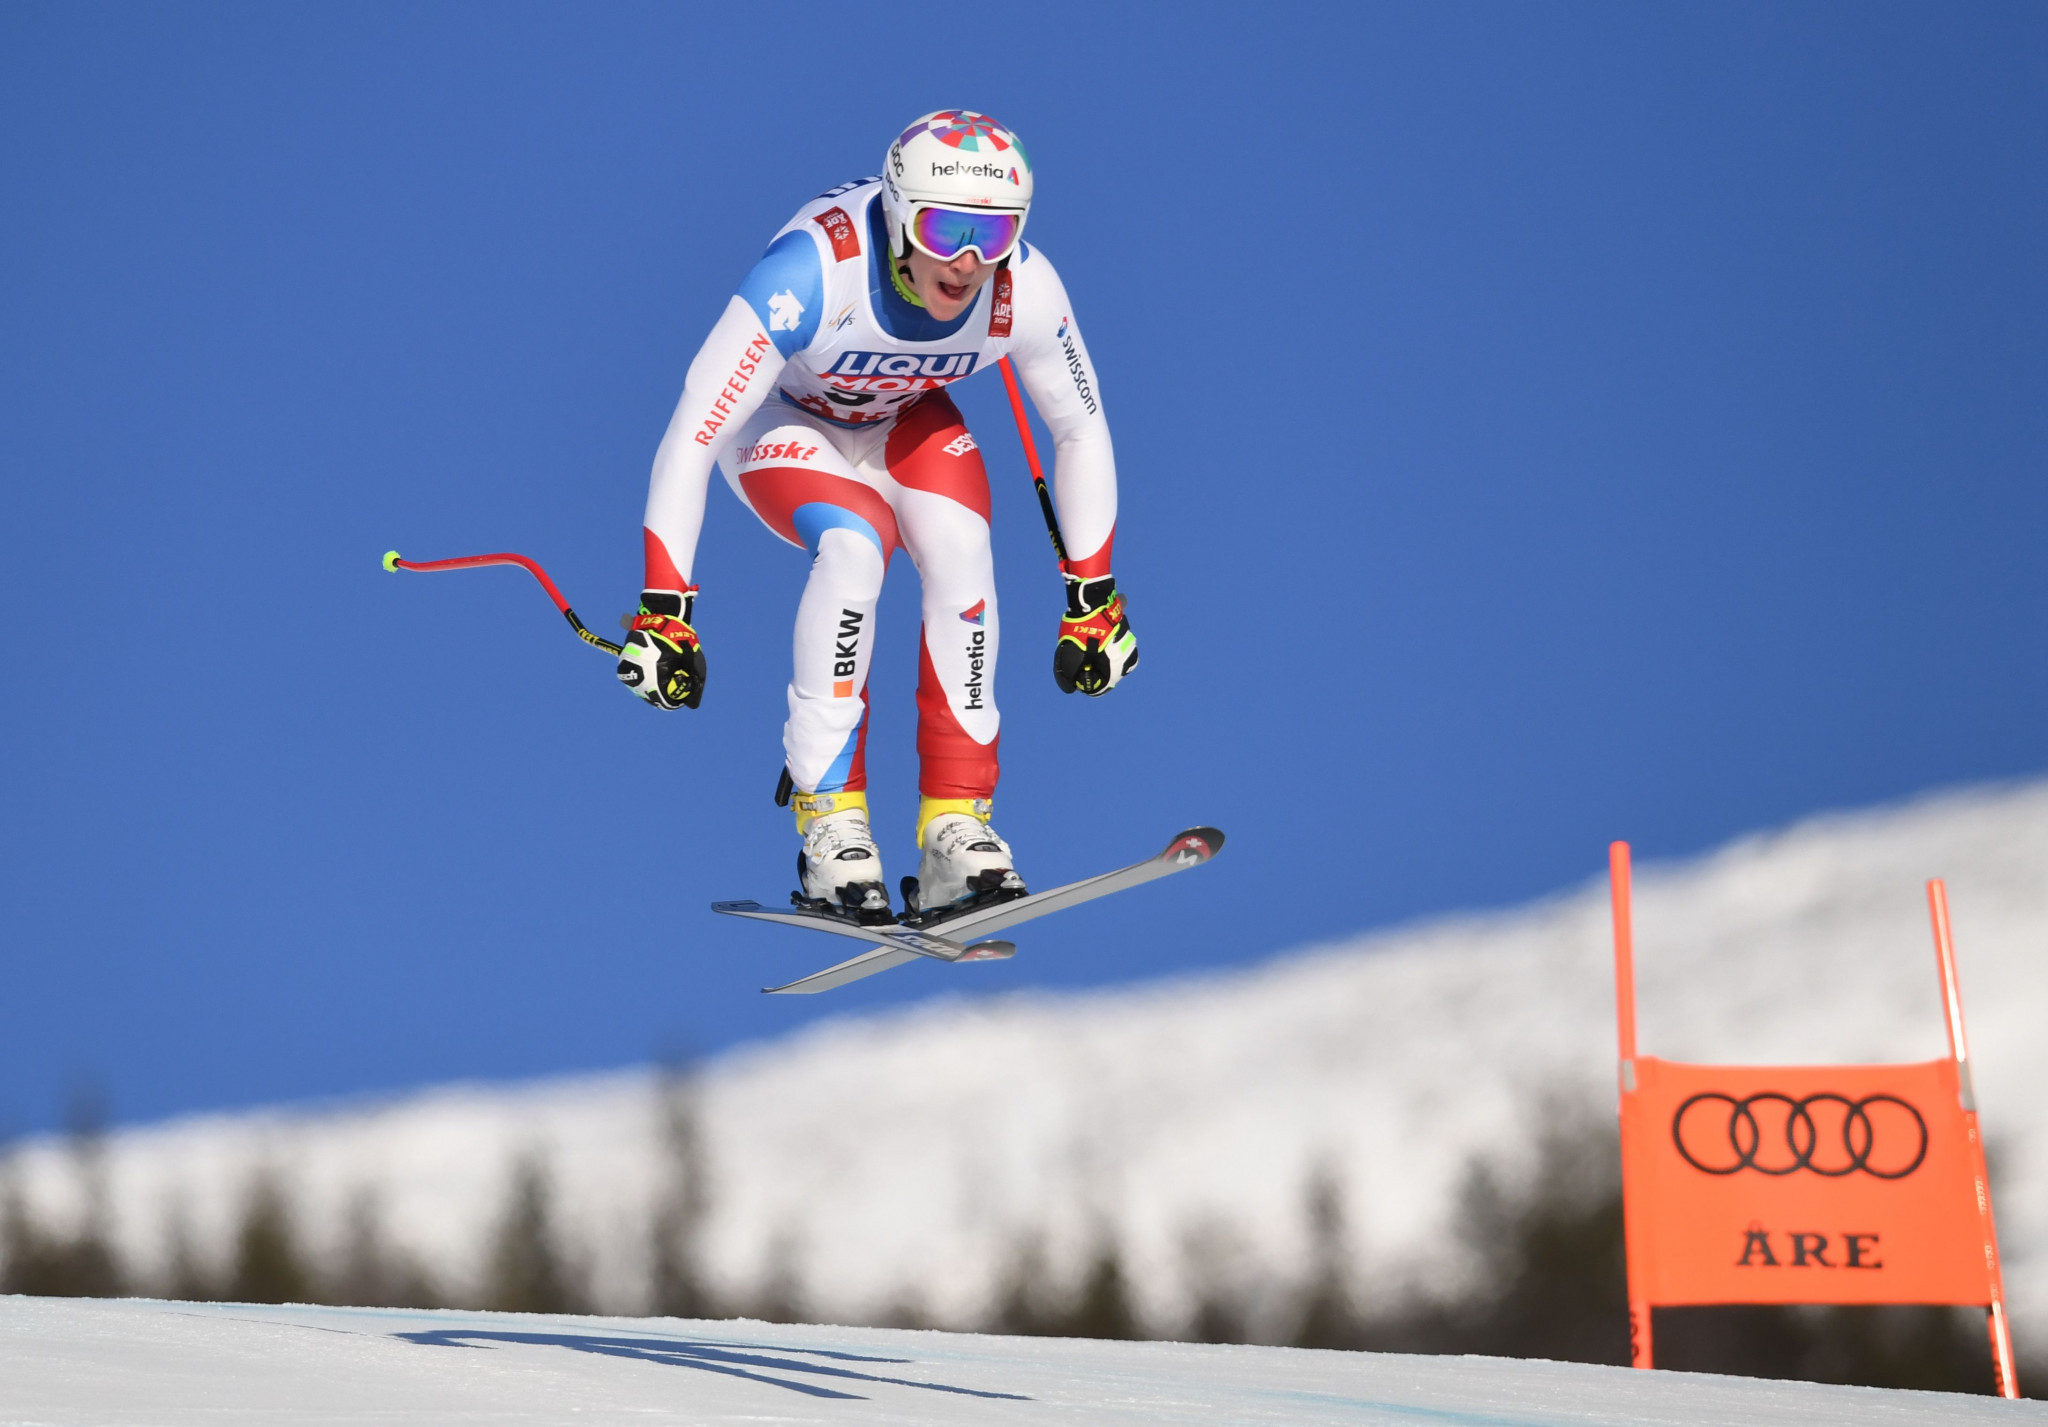 Gian-Franco Kasper's comments came during the ongoing FIS Alpine Skiing World Championships in Sweden ©Getty Images